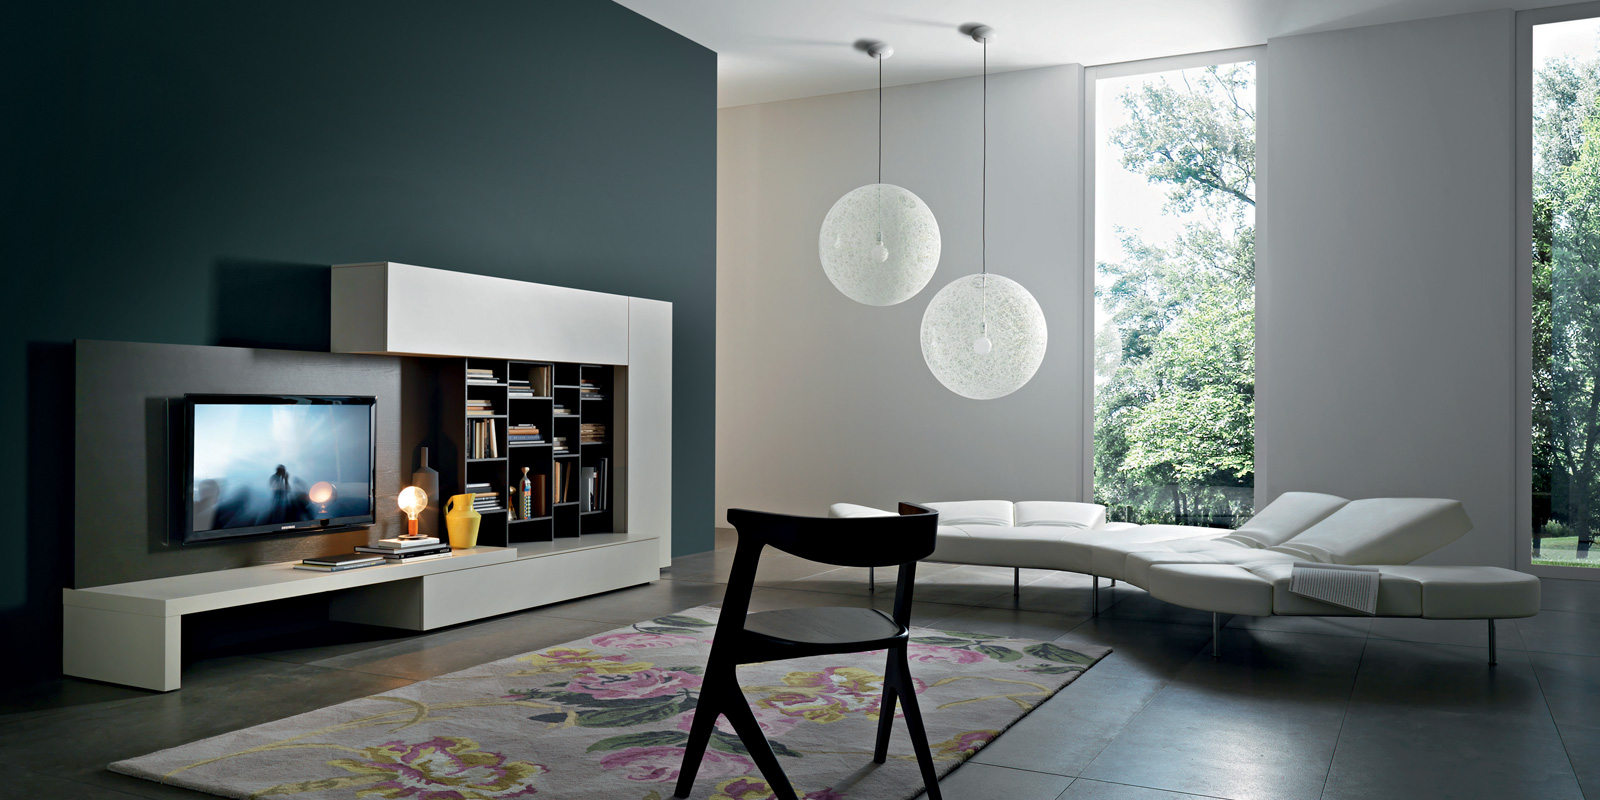 KCC Modern Living Introduces New European Lines To The Bay Area